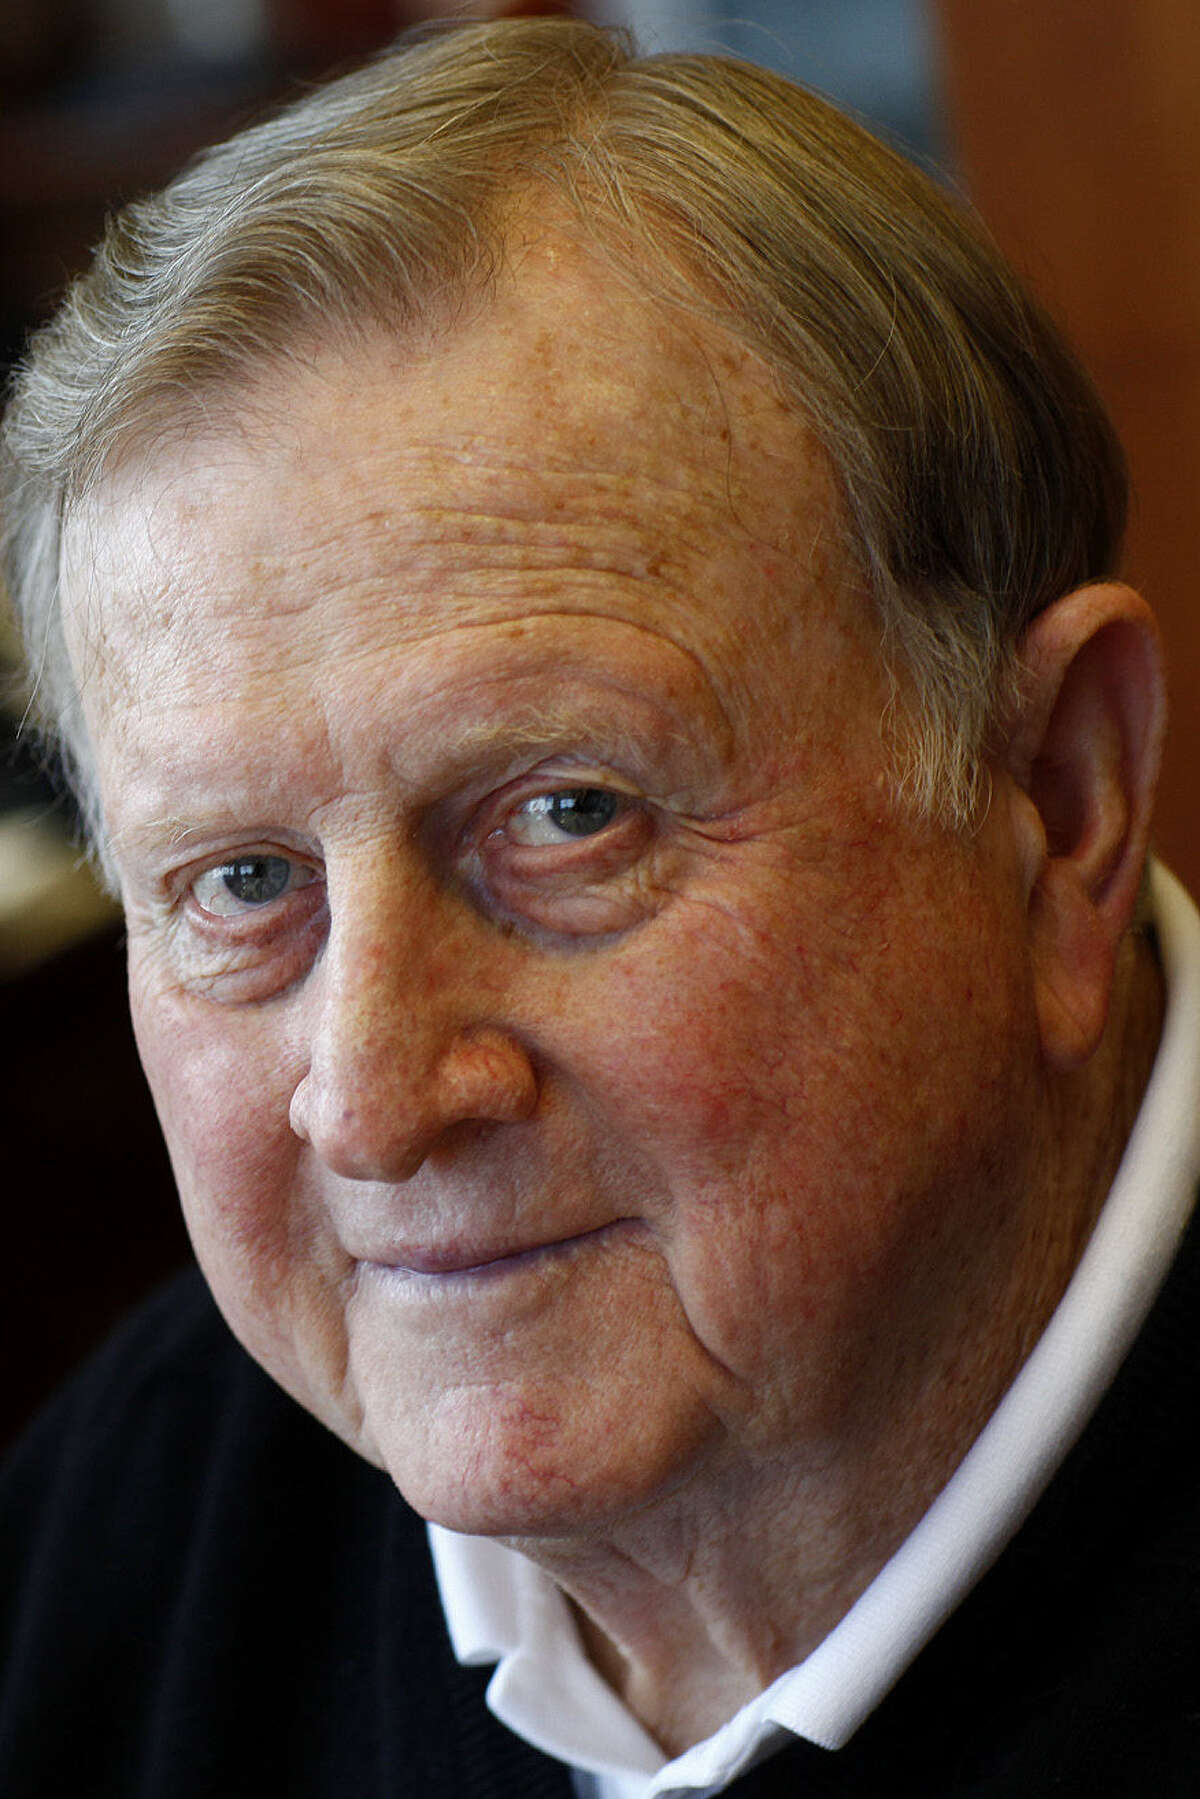 Red McCombs is a San Antonio businessman and has lived in the Alamo City since 1957.